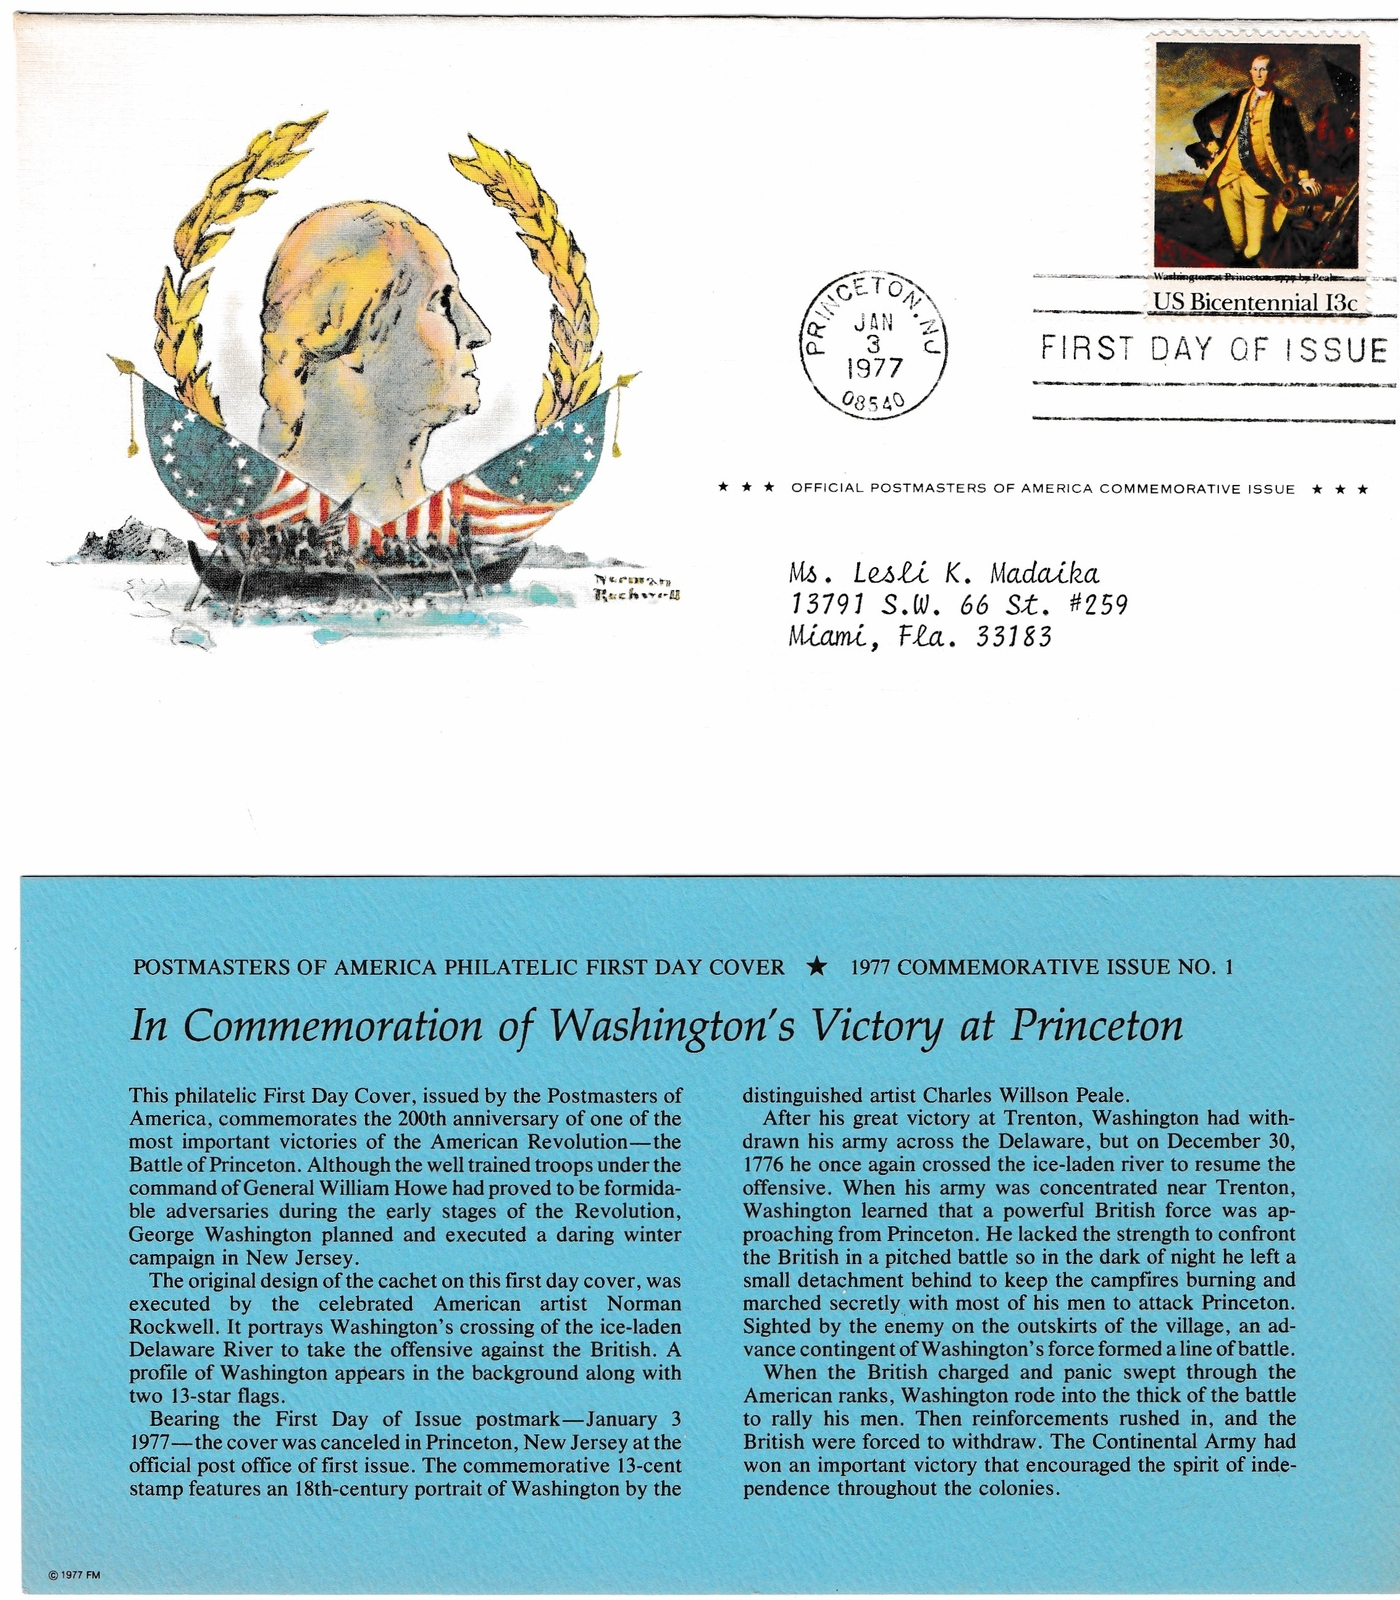 1st Day of Issue, Washington 13 cent USPS Stamp, Official Postmasters of America